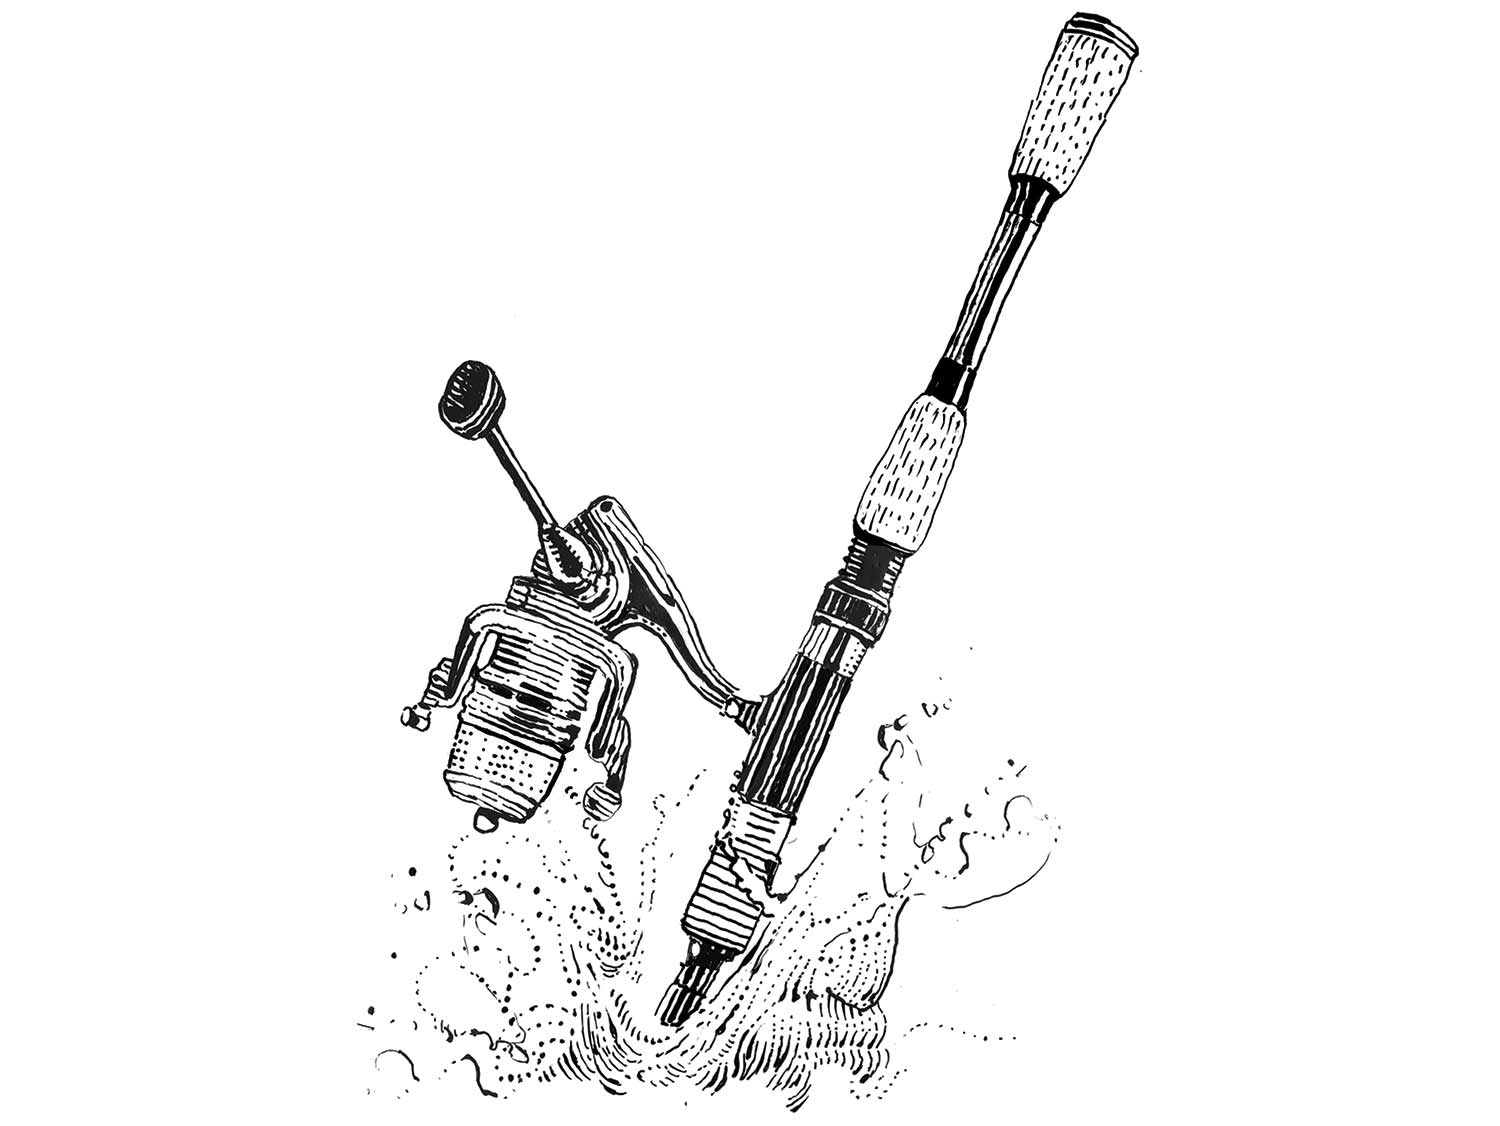 Illustration of a fishing rod and reel.